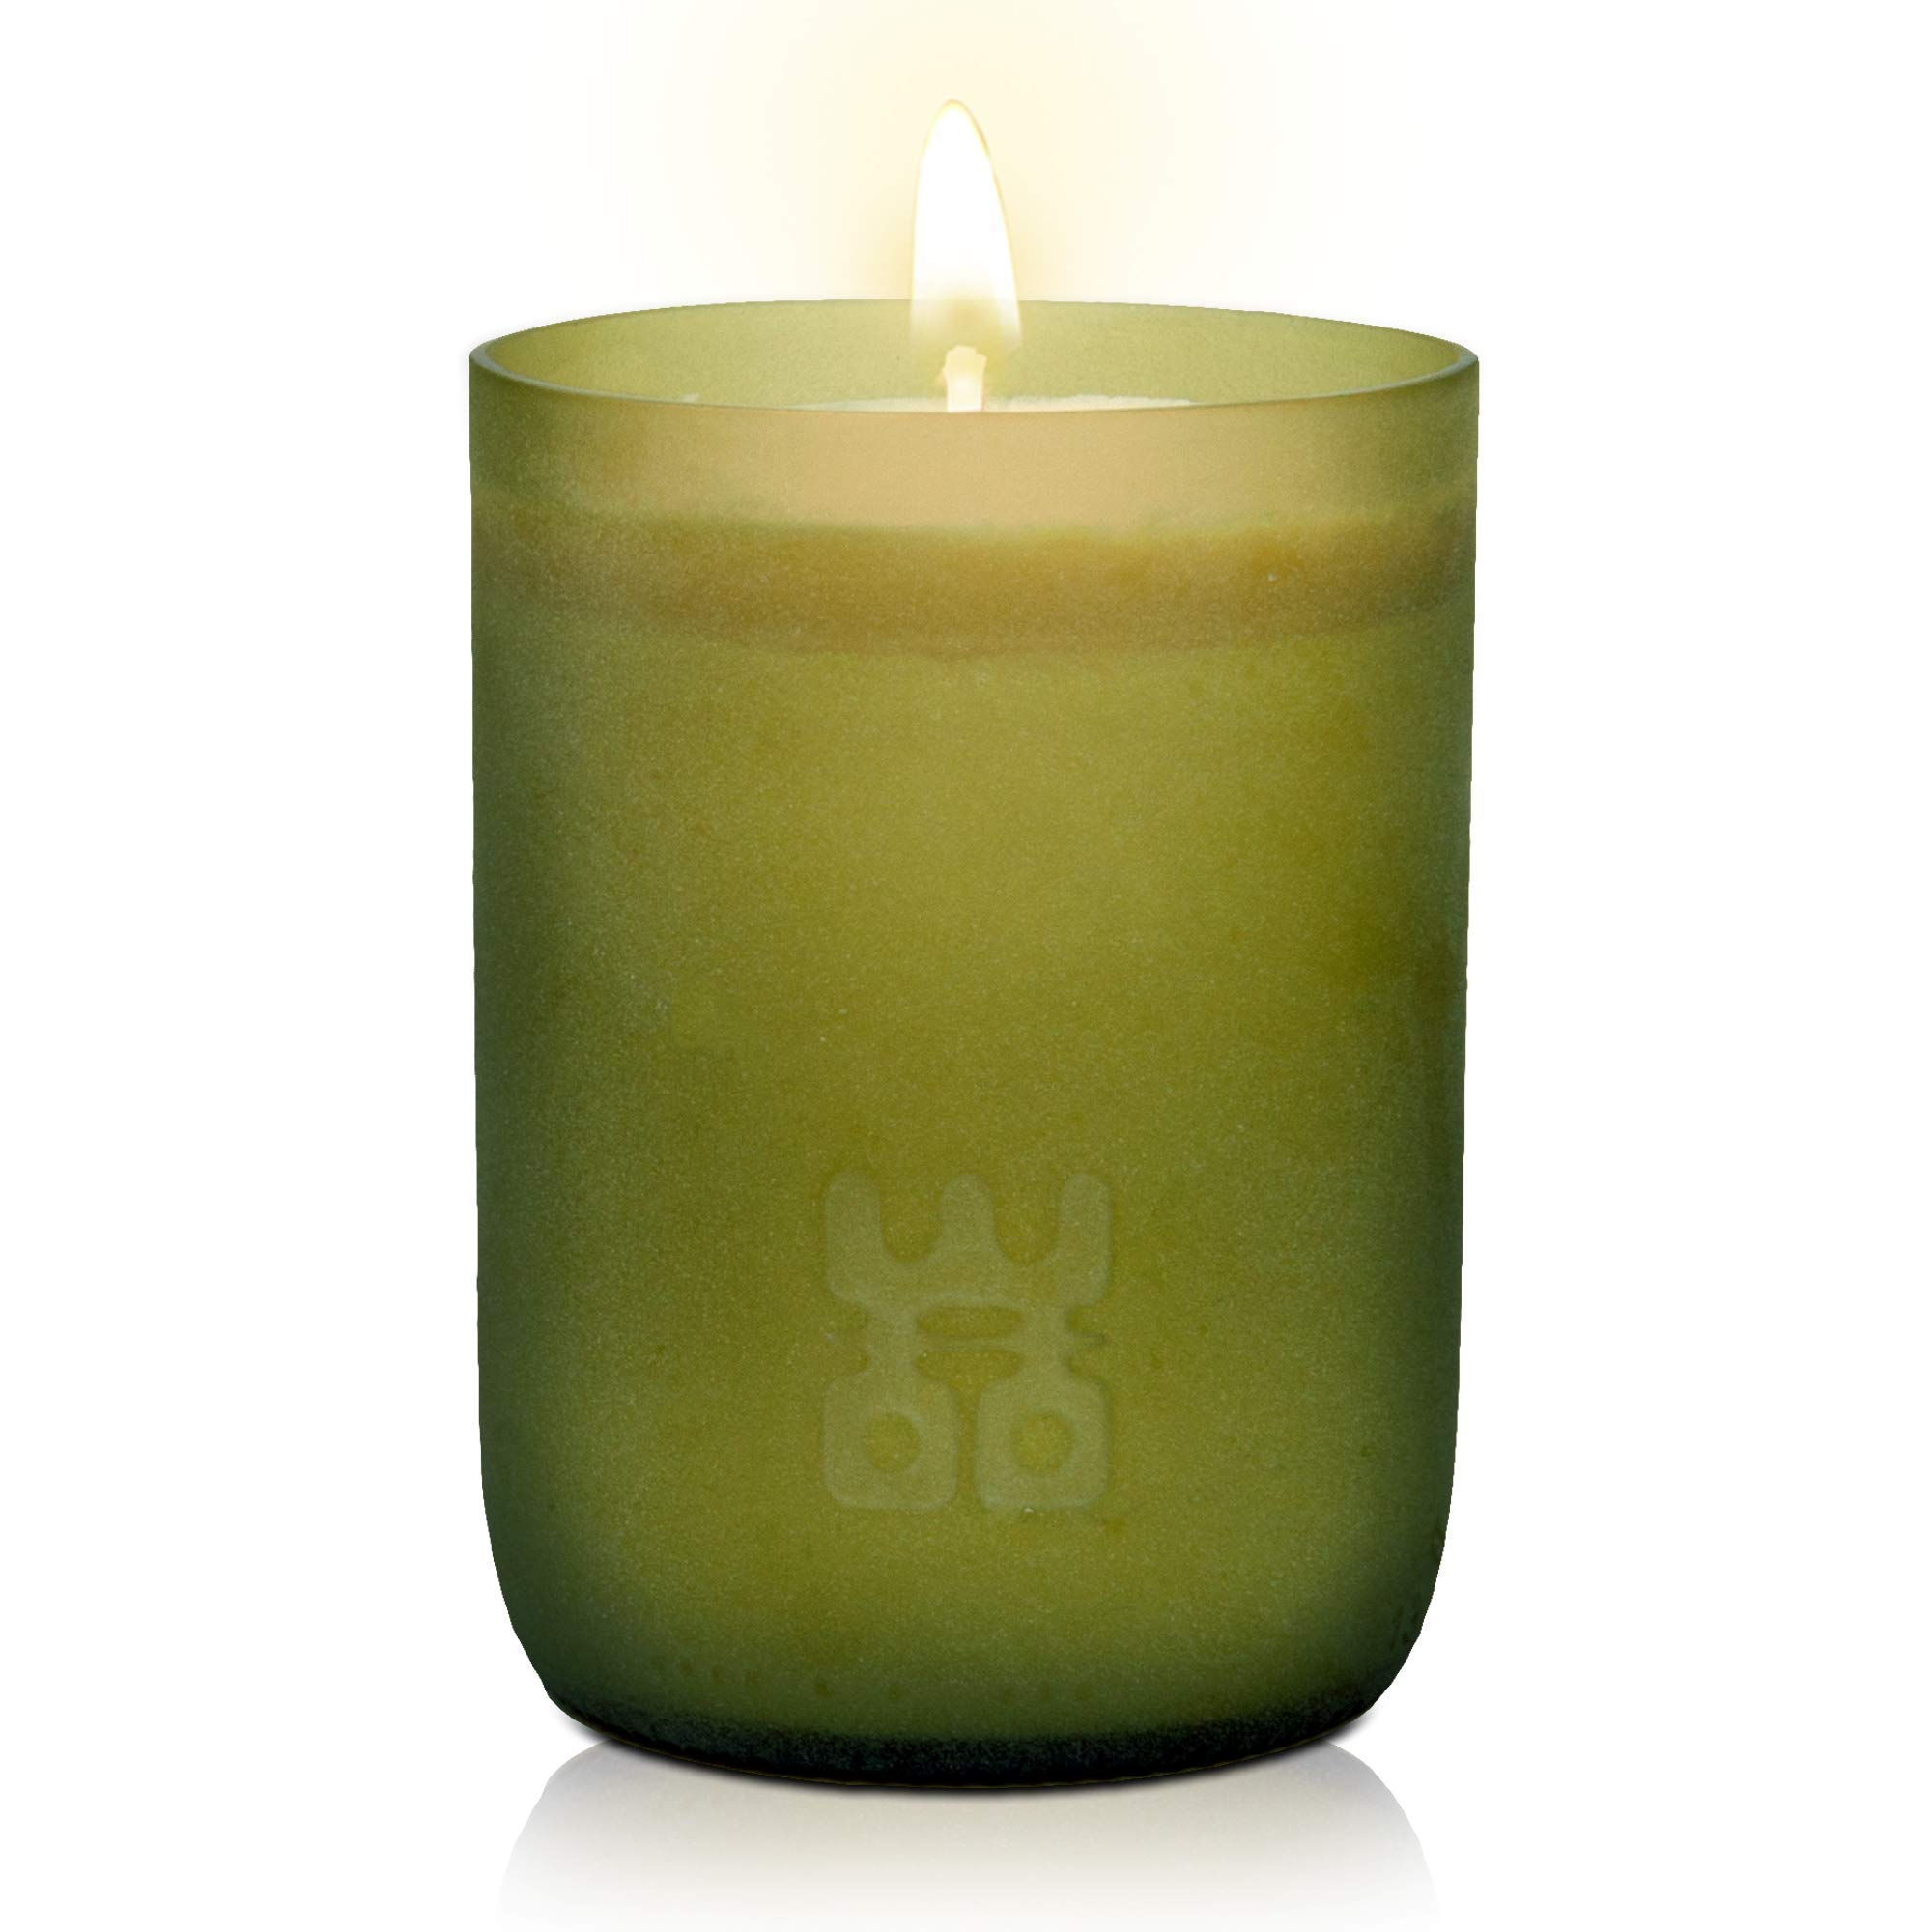 WOO Lucky Stress Relieving Tranquility Fragrance Recycled Wine Bottle Candle 90 Hour Burn